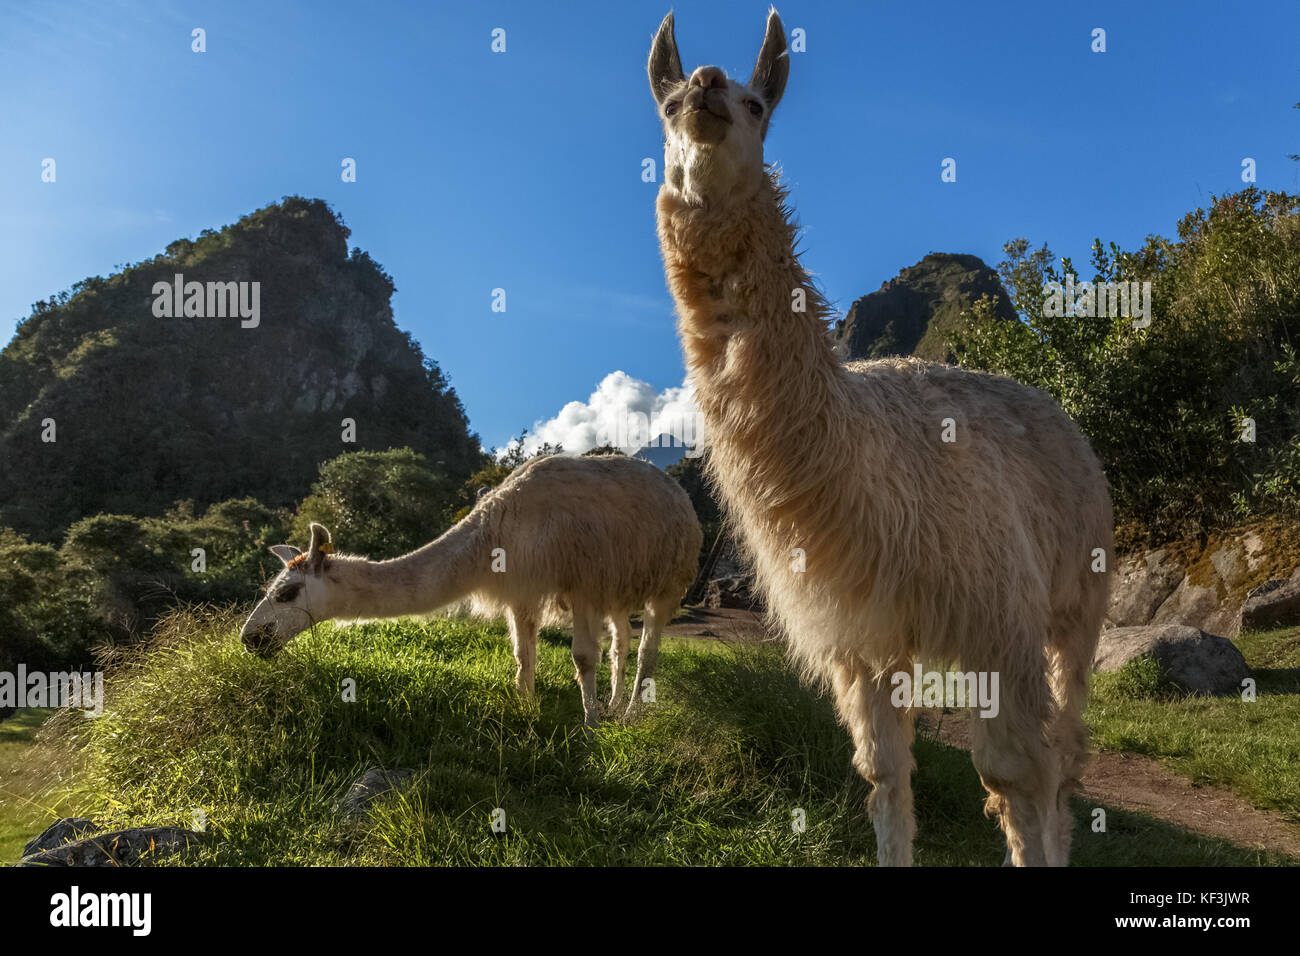 Llamas eating grass on the meadow with Wayna Picchu mountain in the background, Macchu Pikchu, Cuzco Region, Peru - Stock Image